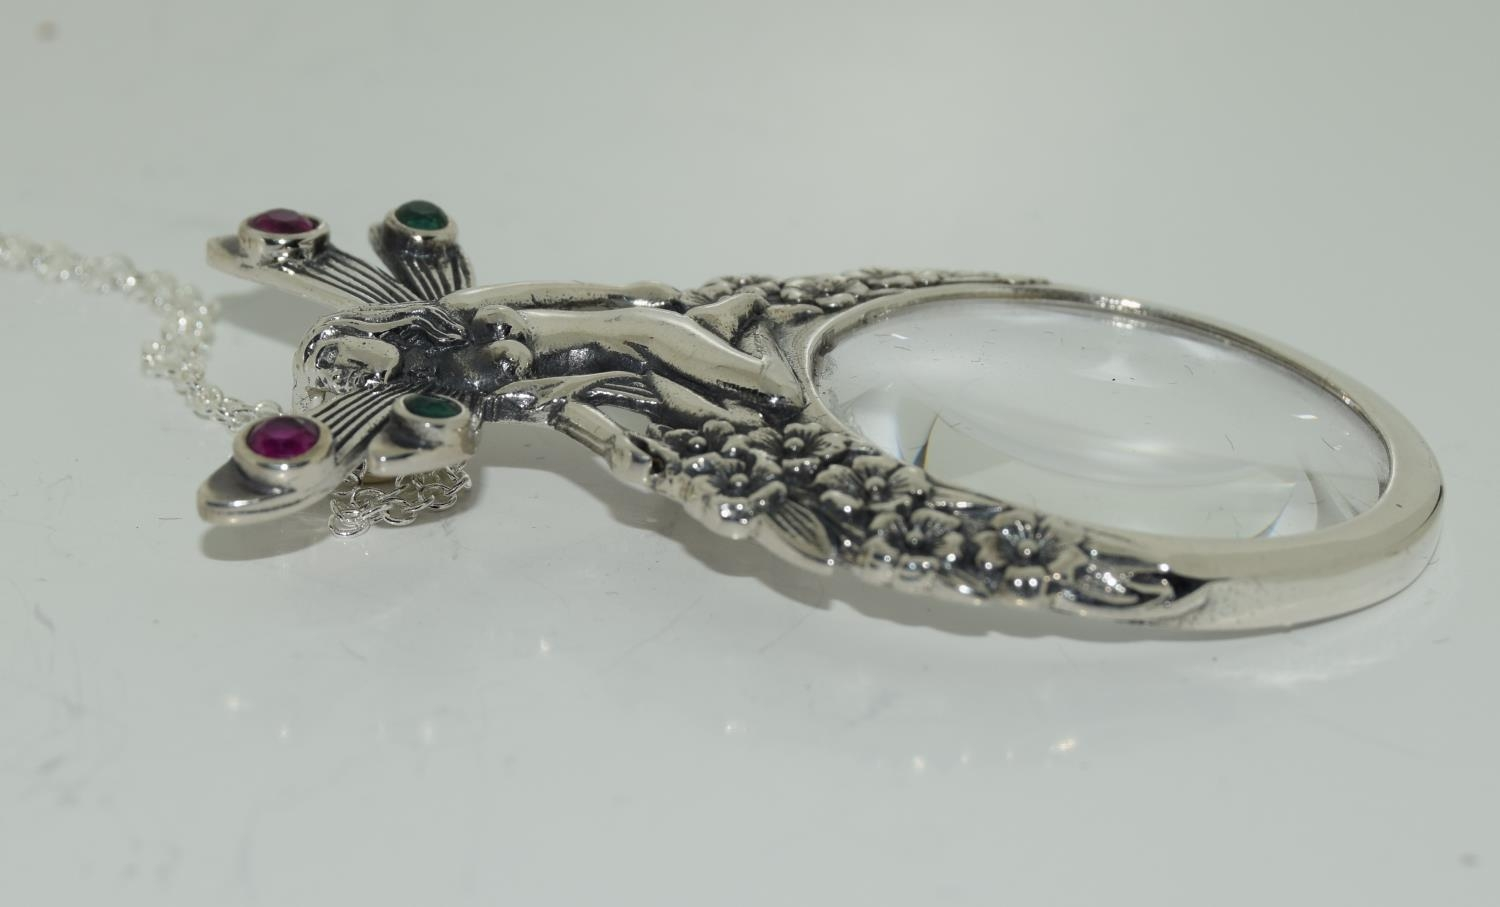 A silver magnifying glass pendant necklace with fairy finial set with Rubies. - Image 2 of 3